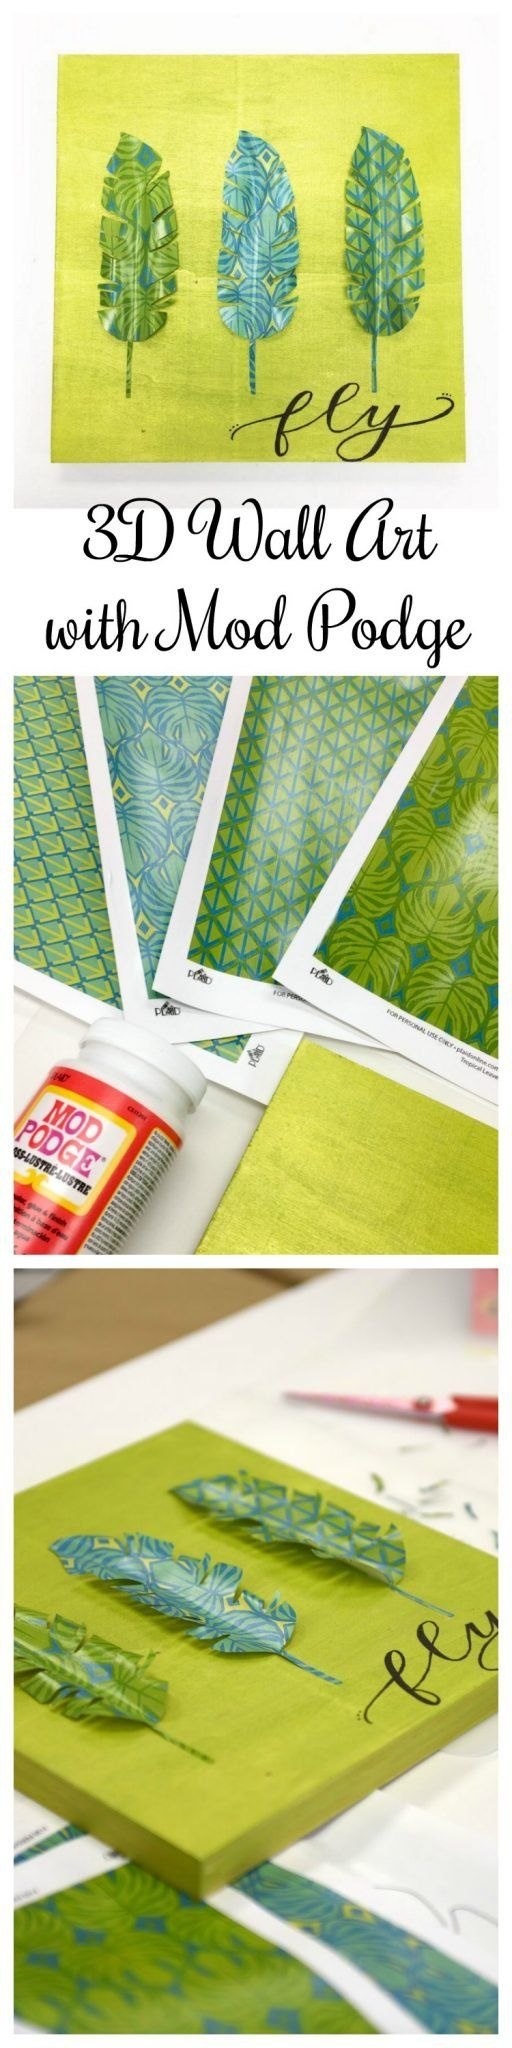 2280 best mod podge mod melts images on pinterest mod melts 3d wall art with mod podge from one artsy mama